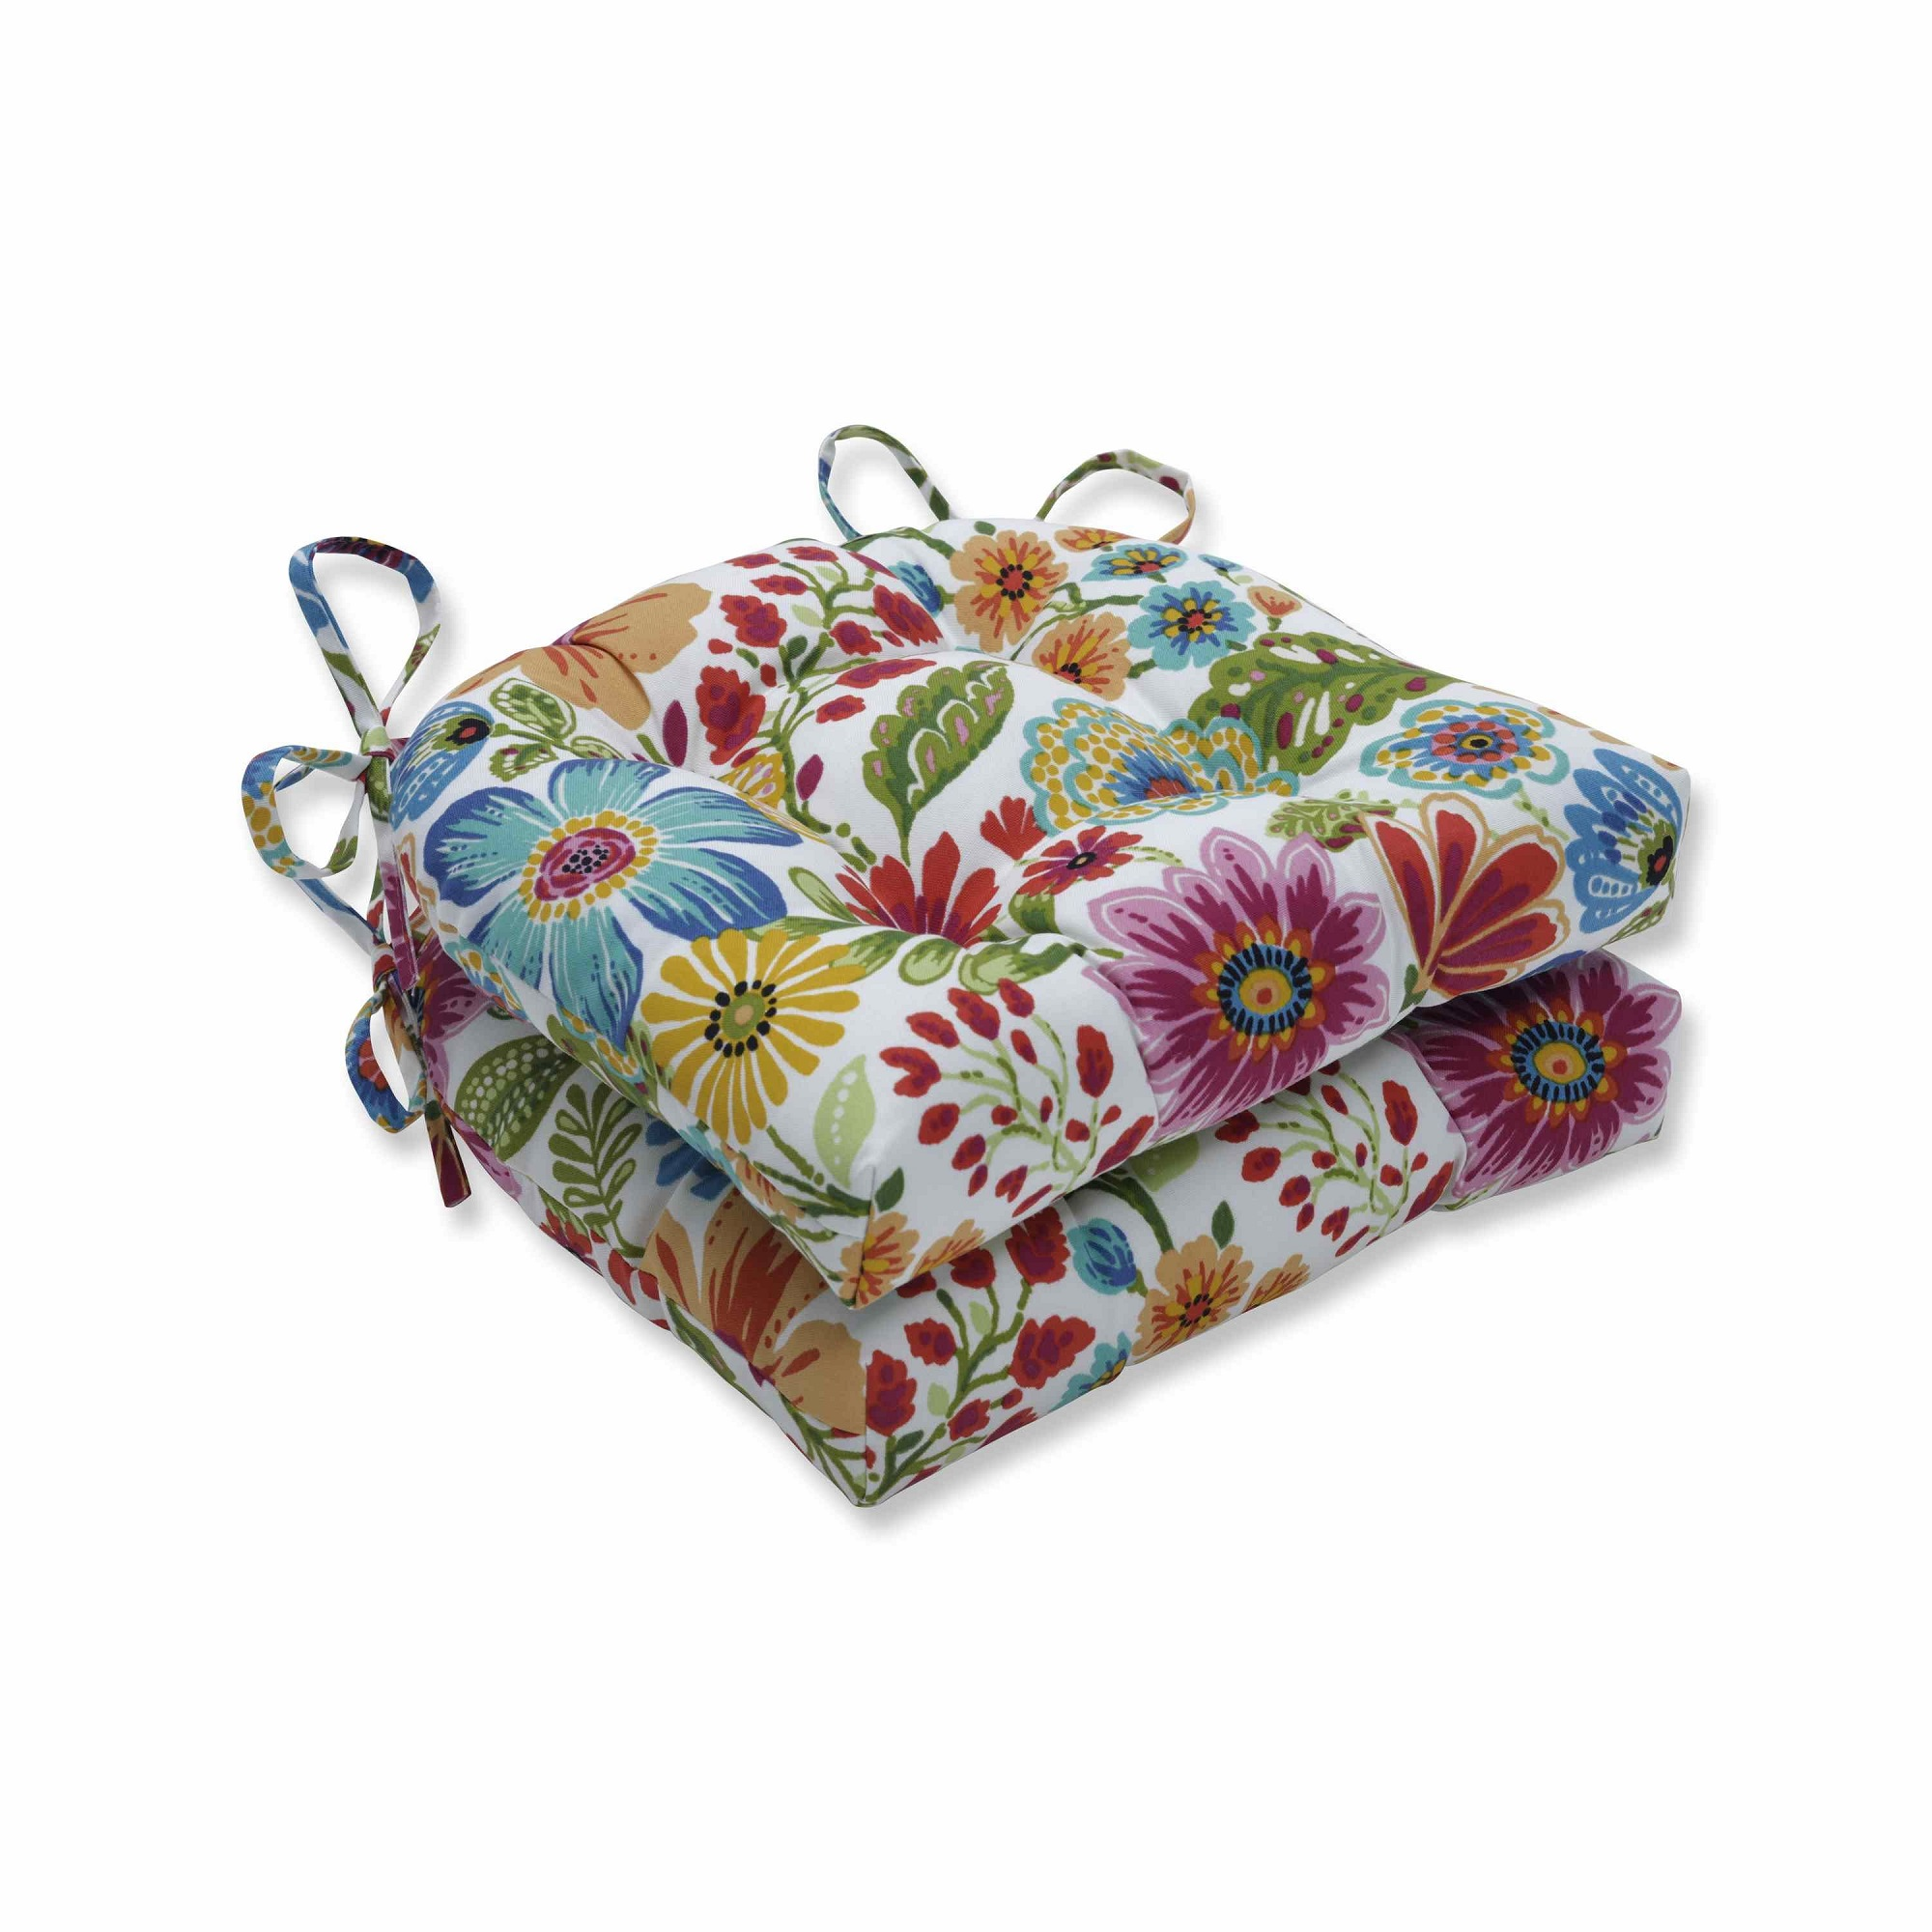 Set of 2 Vibrantly Colored Floral Pattern Reversible Chair Pads 16""